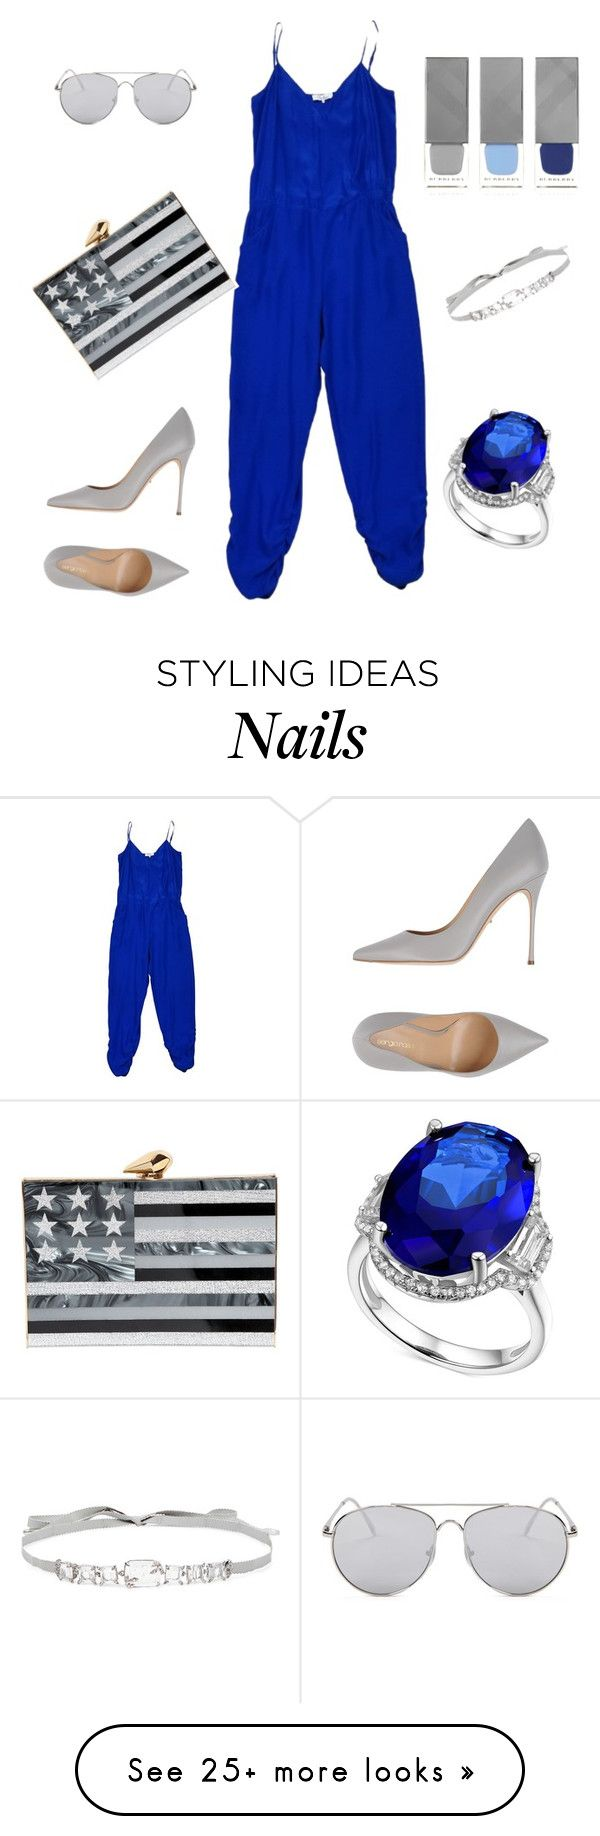 """Blue and Gray... current obsession"" by aubreywashername on Polyvore featuring Parker, Sergio Rossi, Forever 21, Jenny Packham, KOTUR, Burberry and jumpsuits"